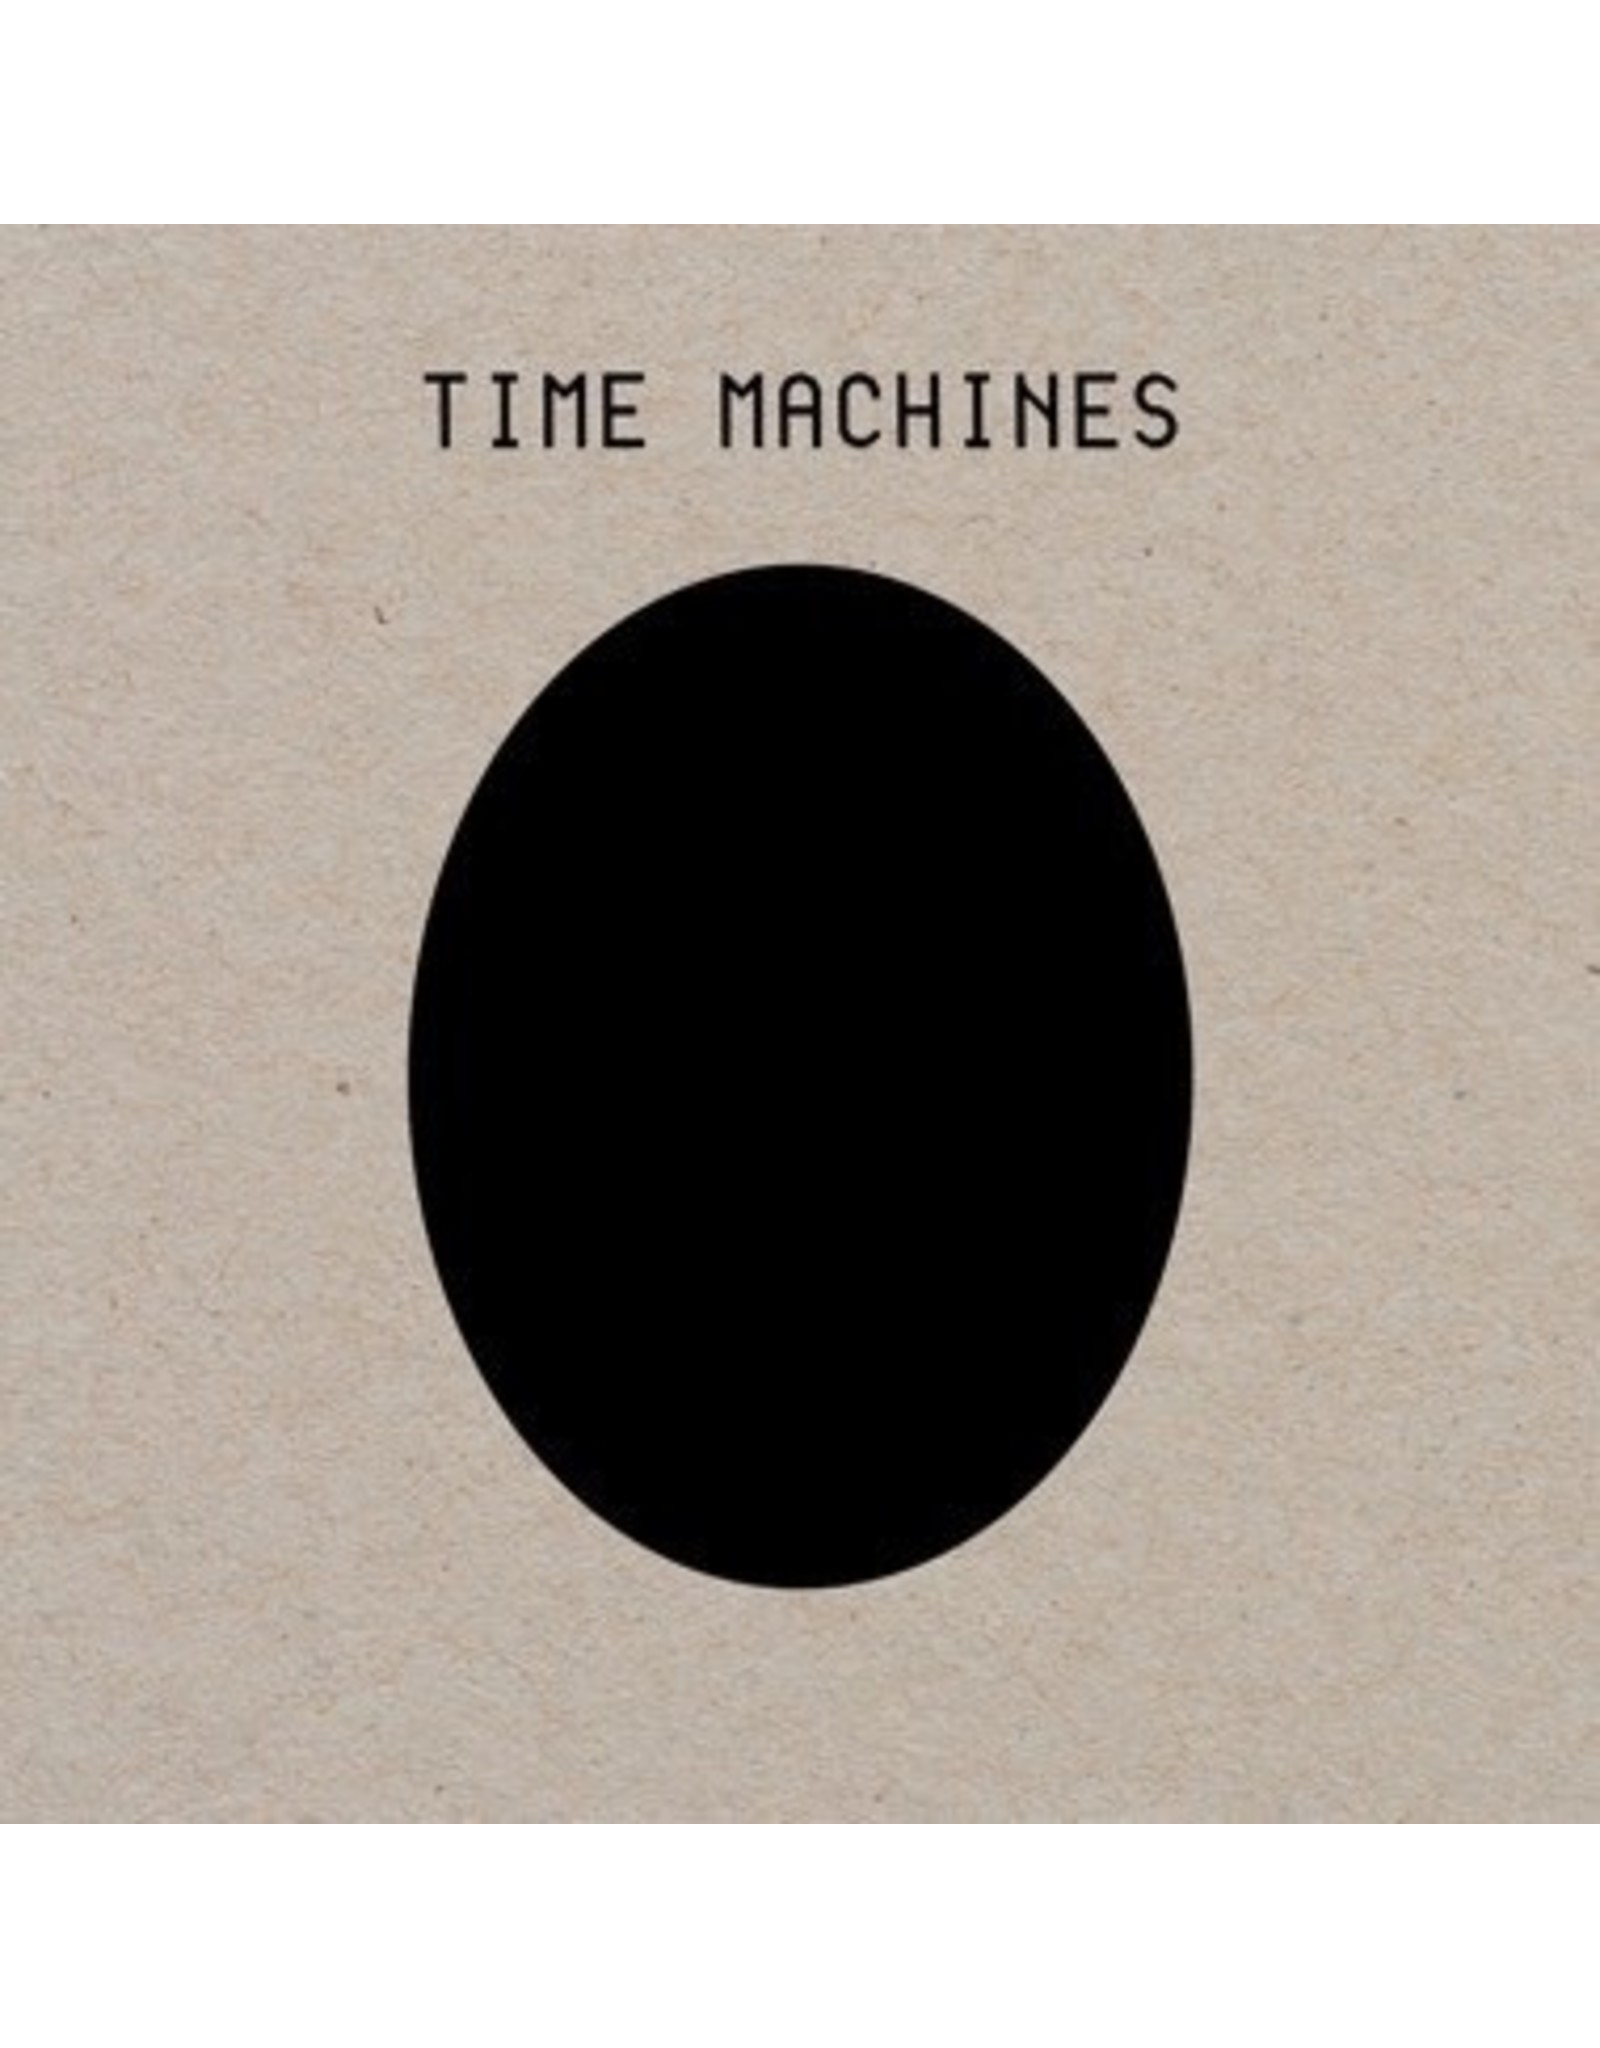 New Vinyl Coil - Time Machines (Colored) 2LP